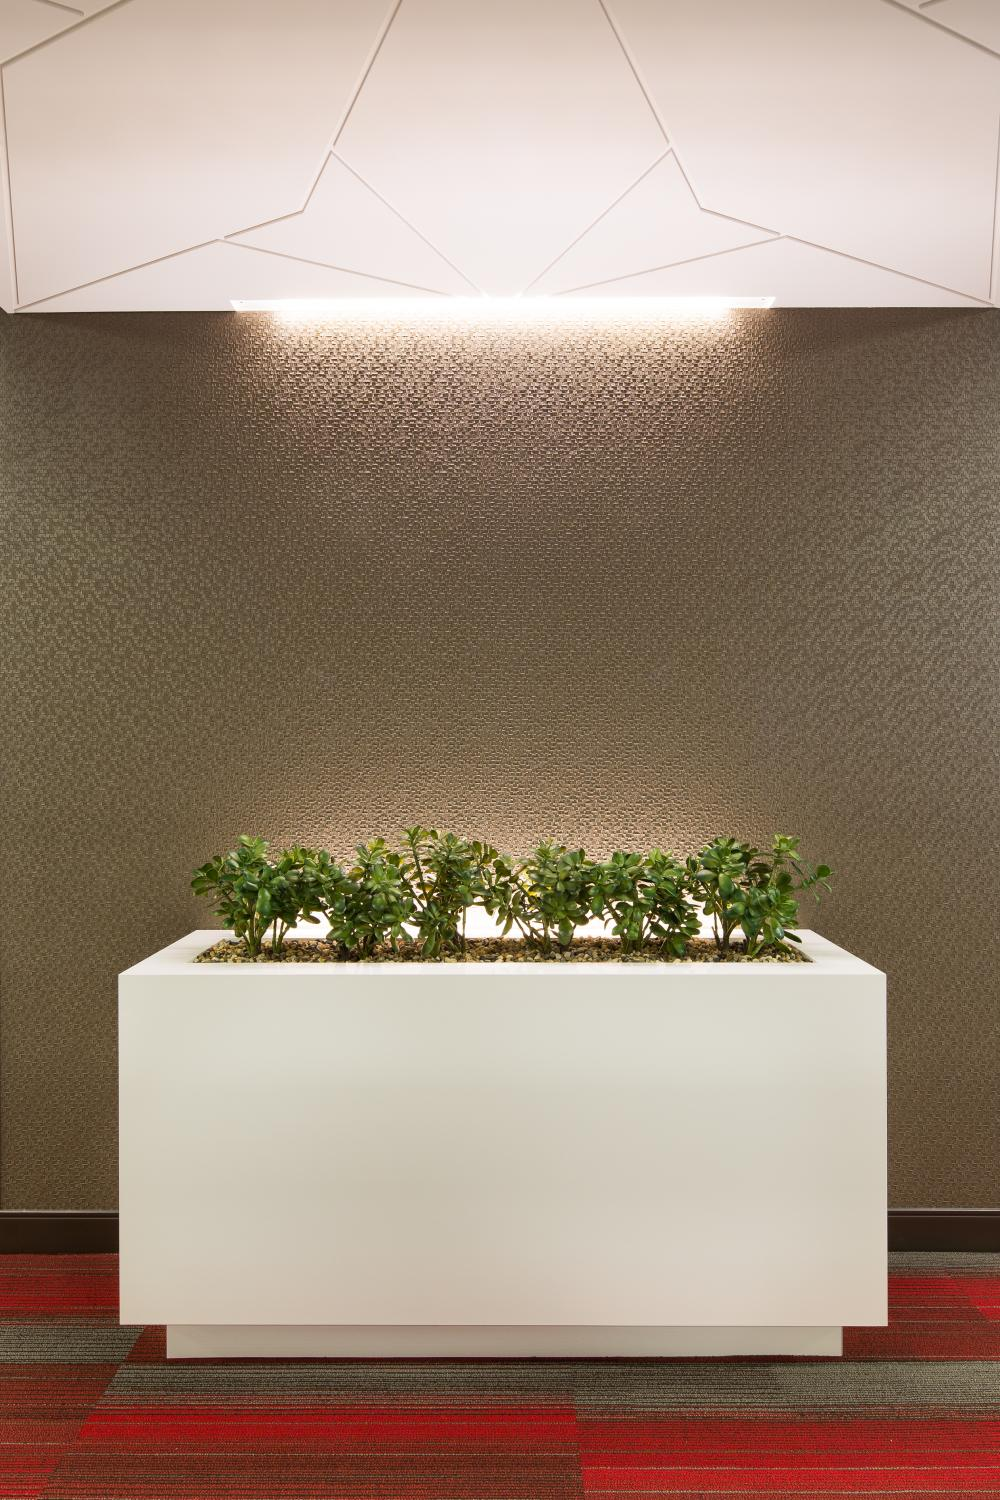 Alden Torch Financial Planter and Wall Decoration Commercial Construction Denver Colorado